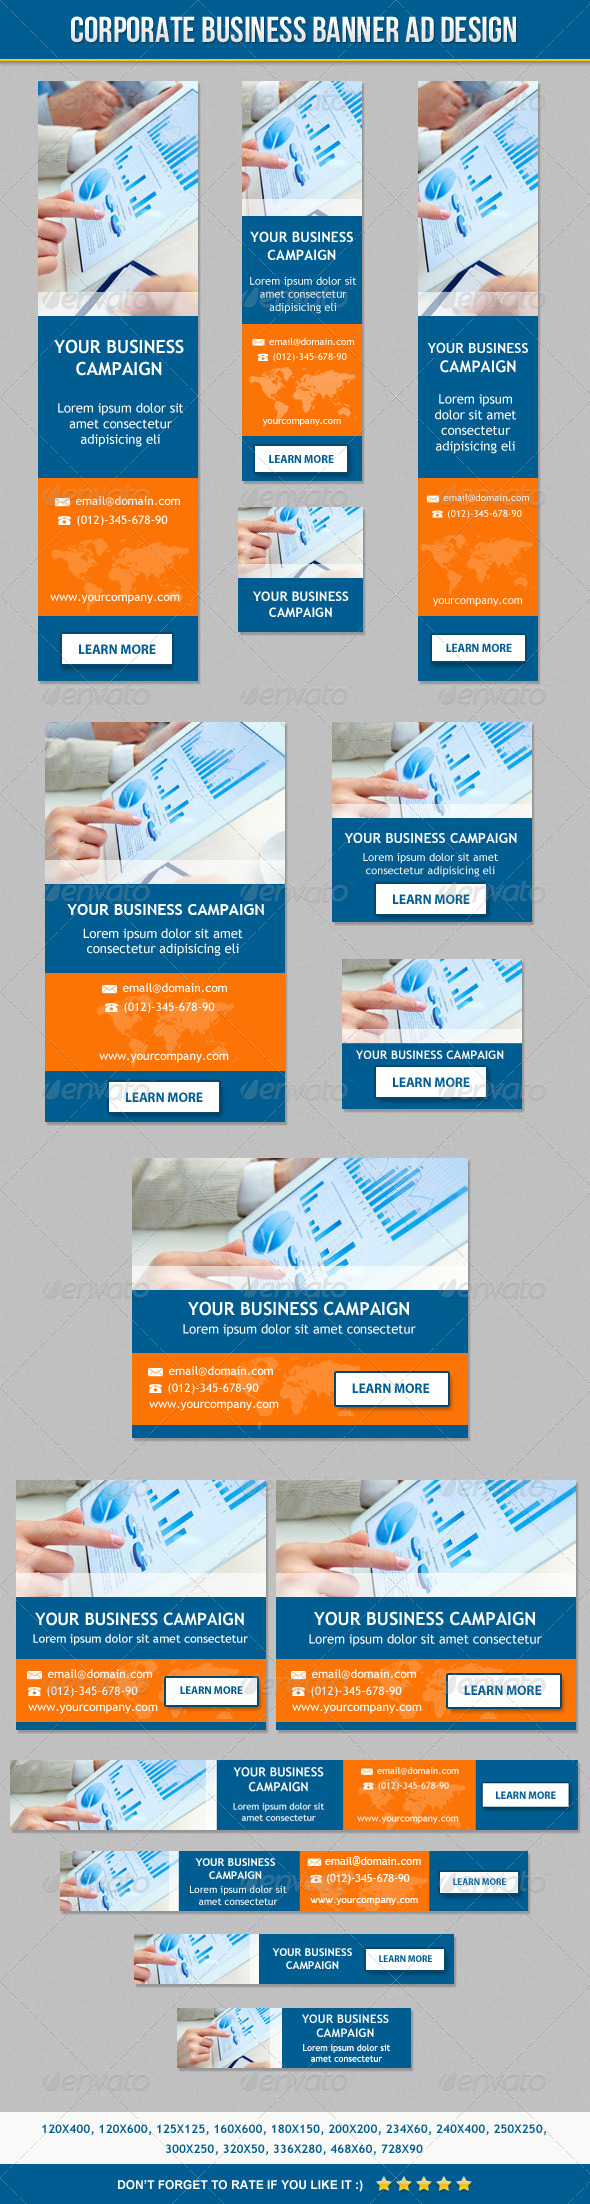 Corporate Business Banner ad Design - Banners & Ads Web Elements